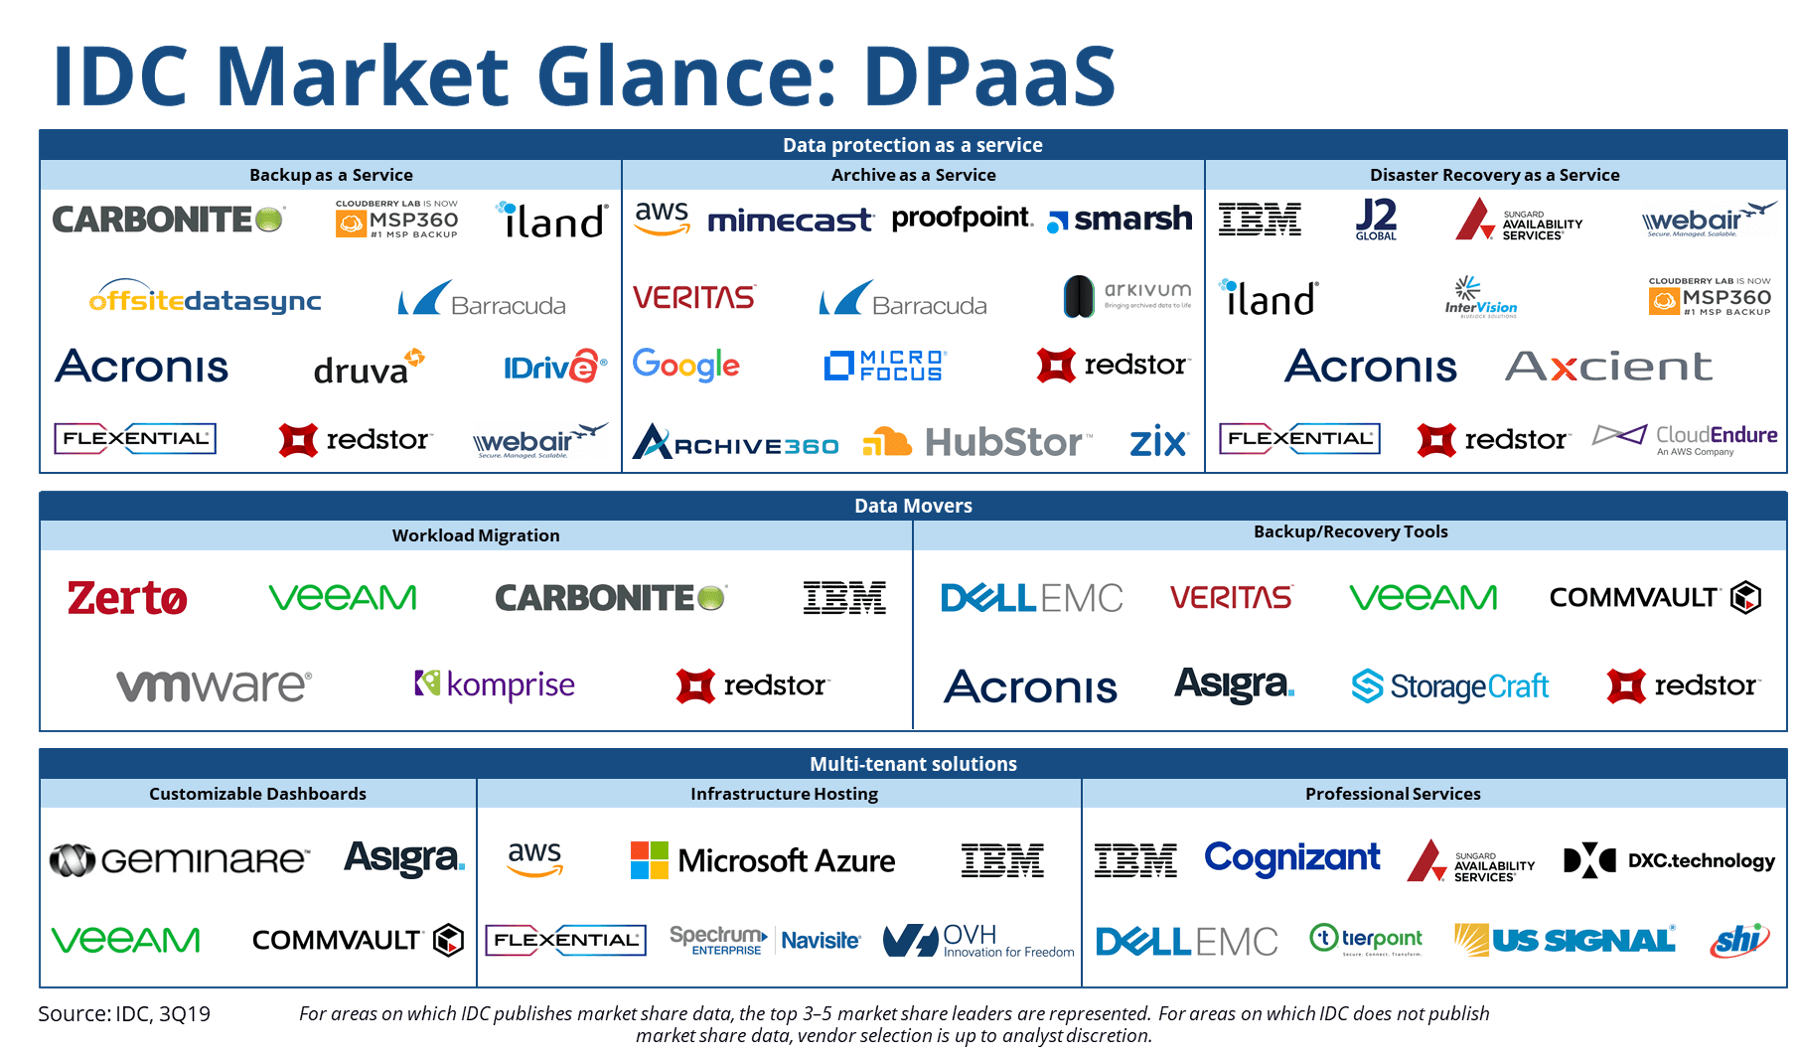 IDC market glance matrix on dpaas